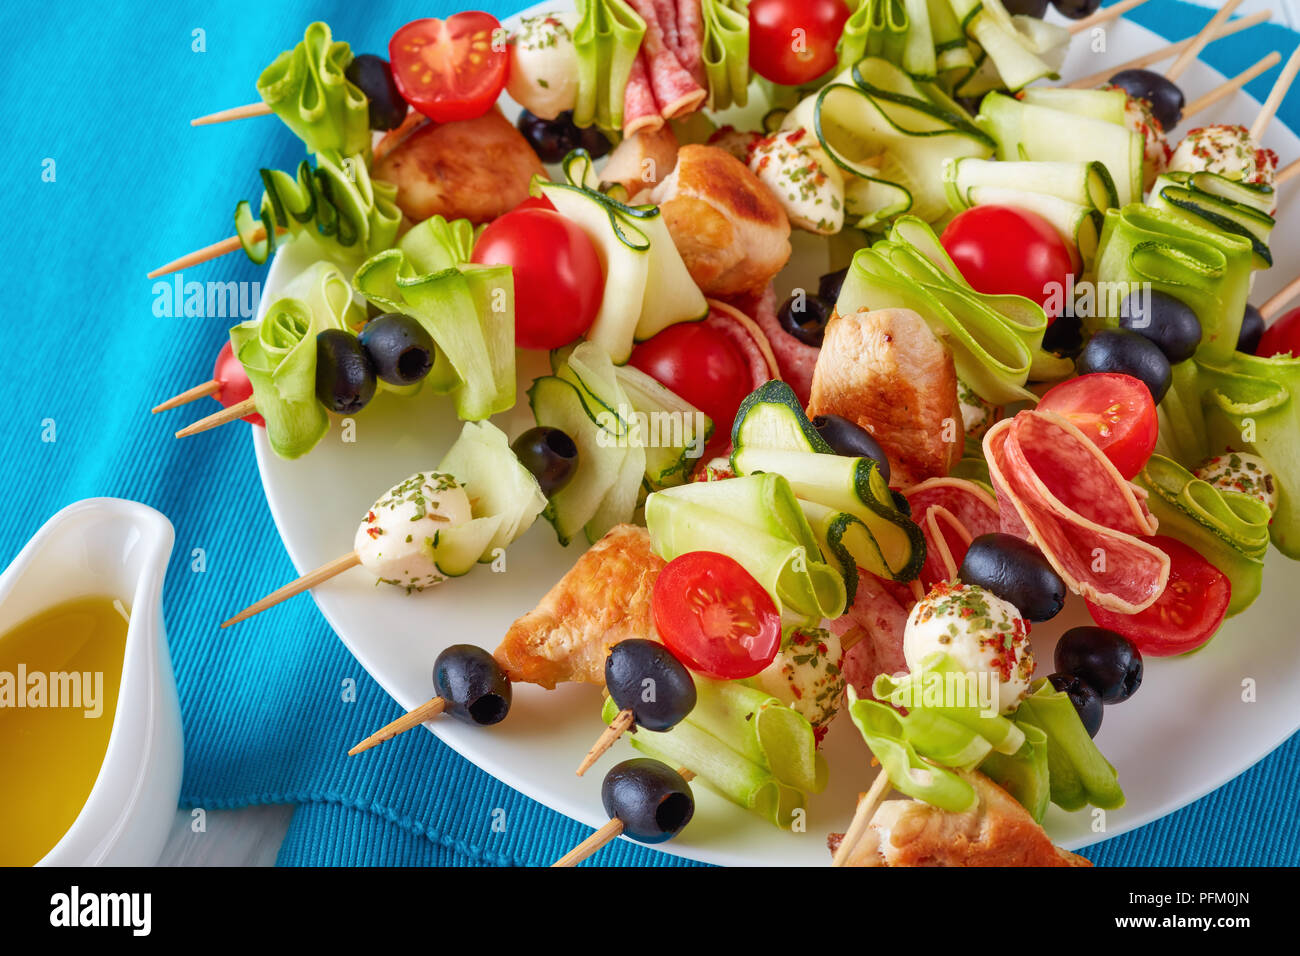 grilled chicken meat shish kebab skewers with zucchini ribbons, tomatoes, mozzarella balls, salami slices, black olives on a white plate, view from ab - Stock Image